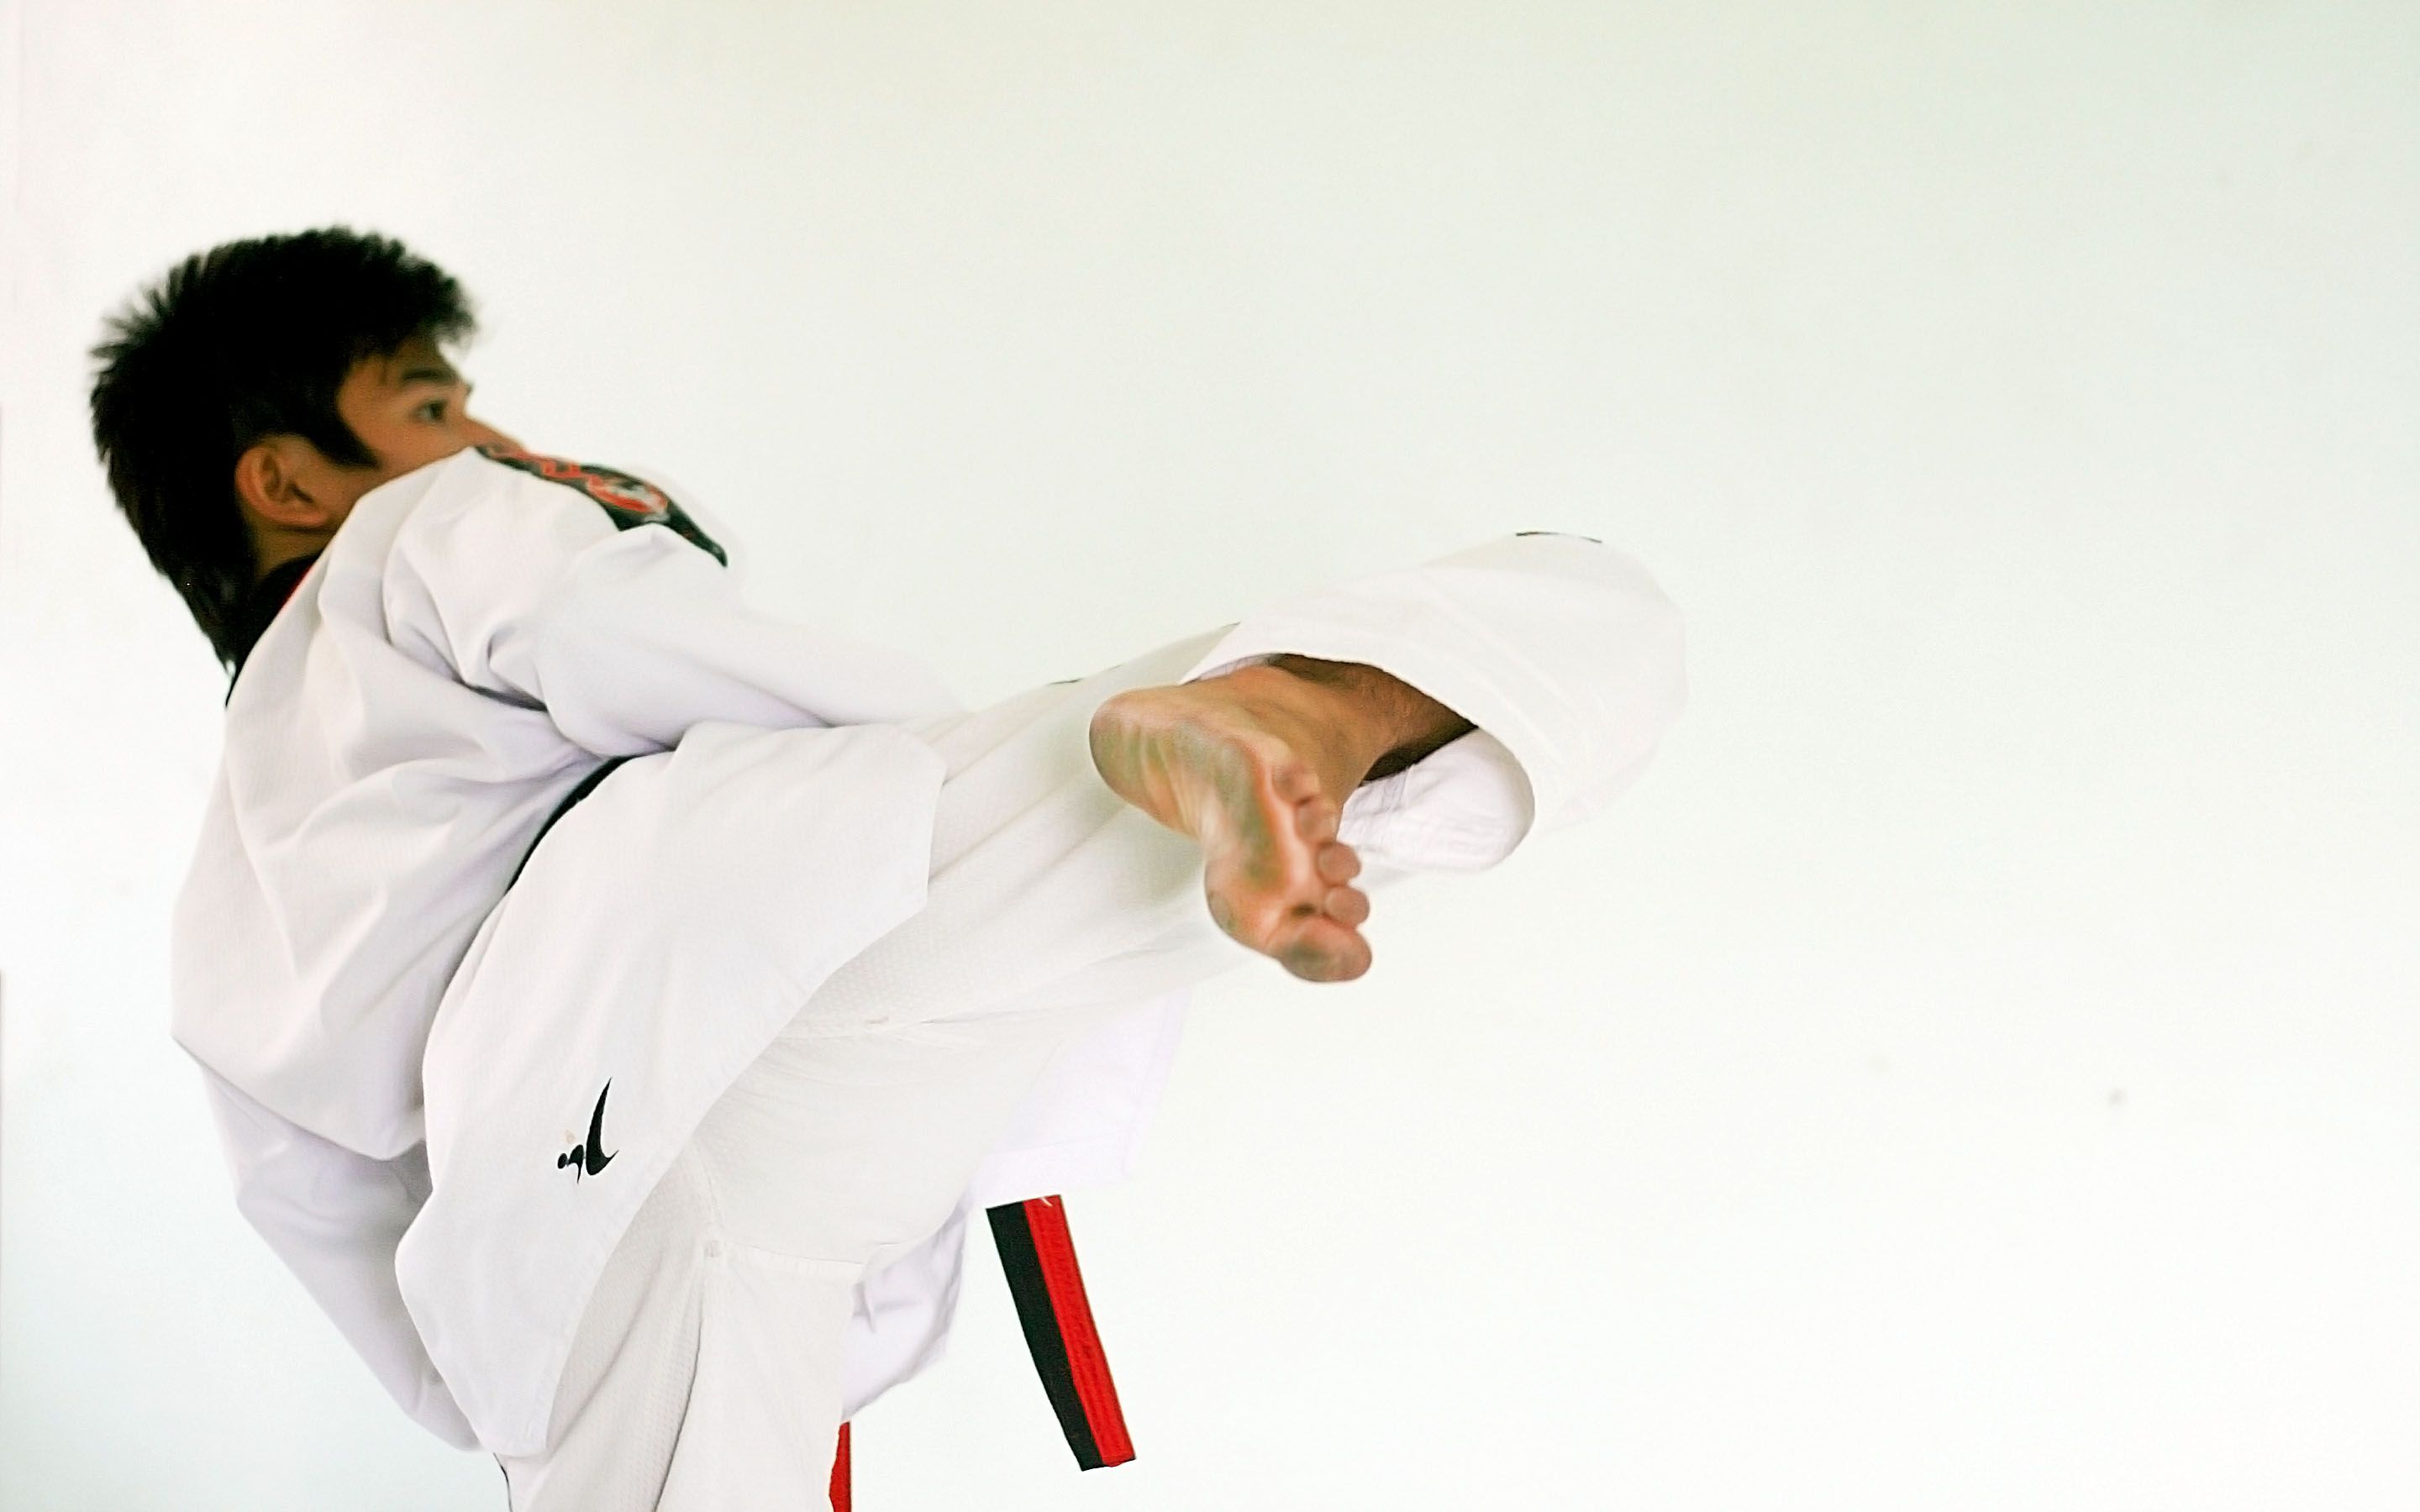 2880x1800 How to Deliver a Roundhouse Kick in Tae Kwon Do: 3 Steps